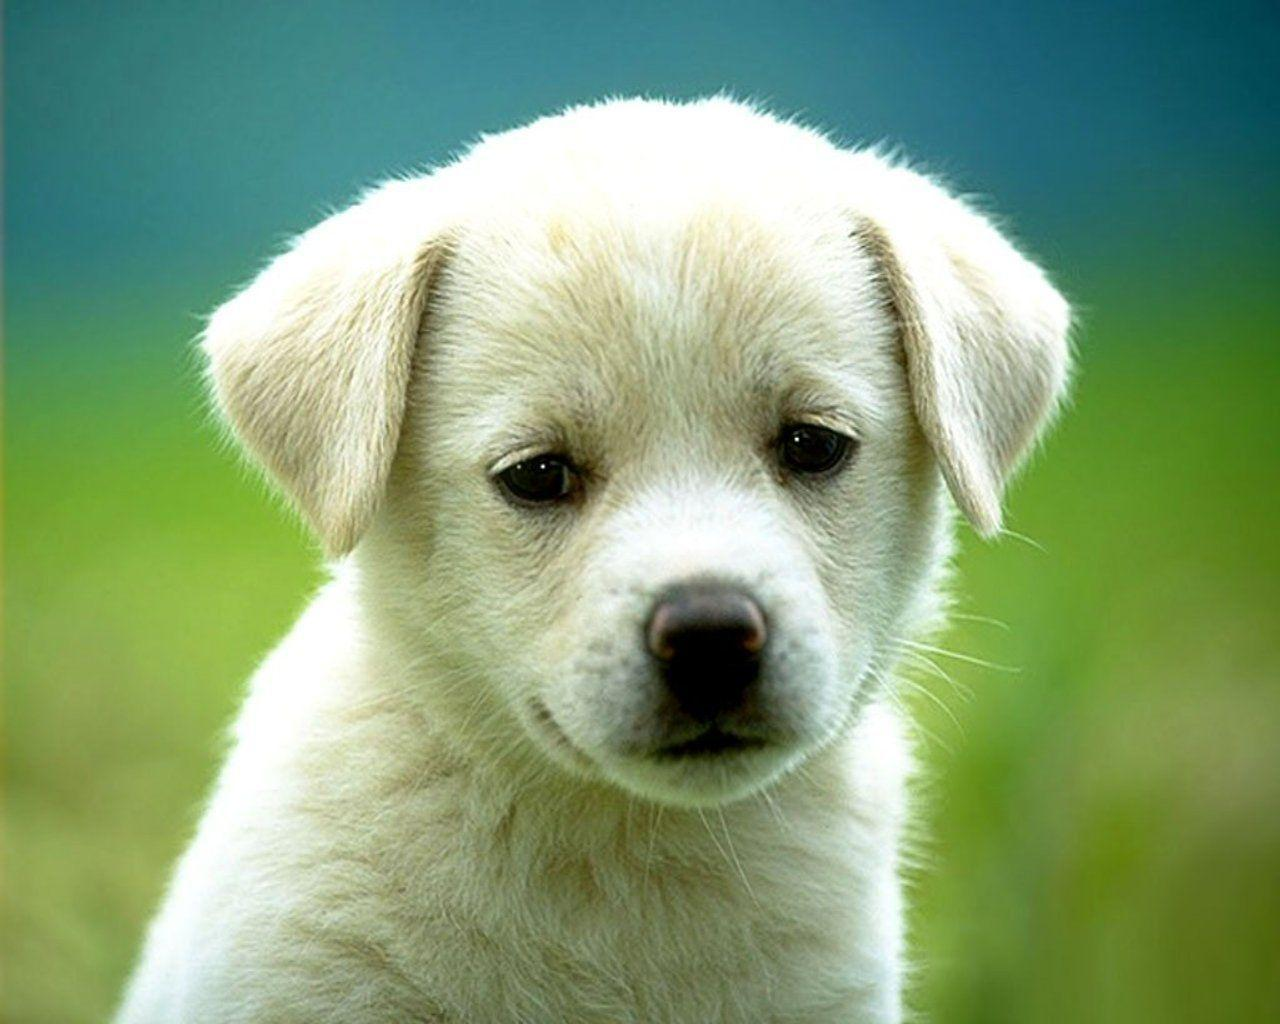 Puppy Wallpapers gratis